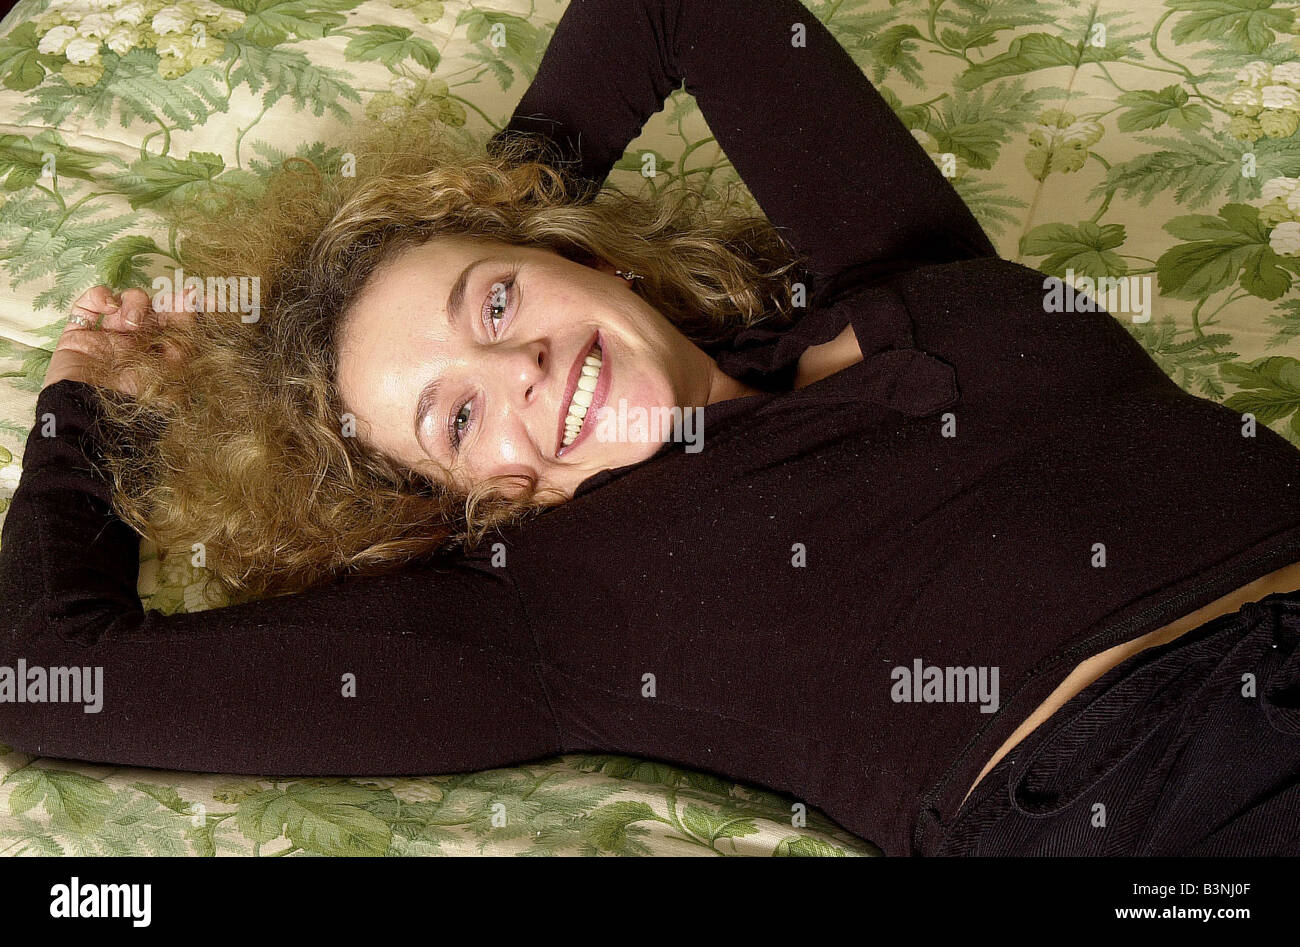 TV actress Julia Sawalha January 2002 Pictured in London Lying on a bed - Stock Image